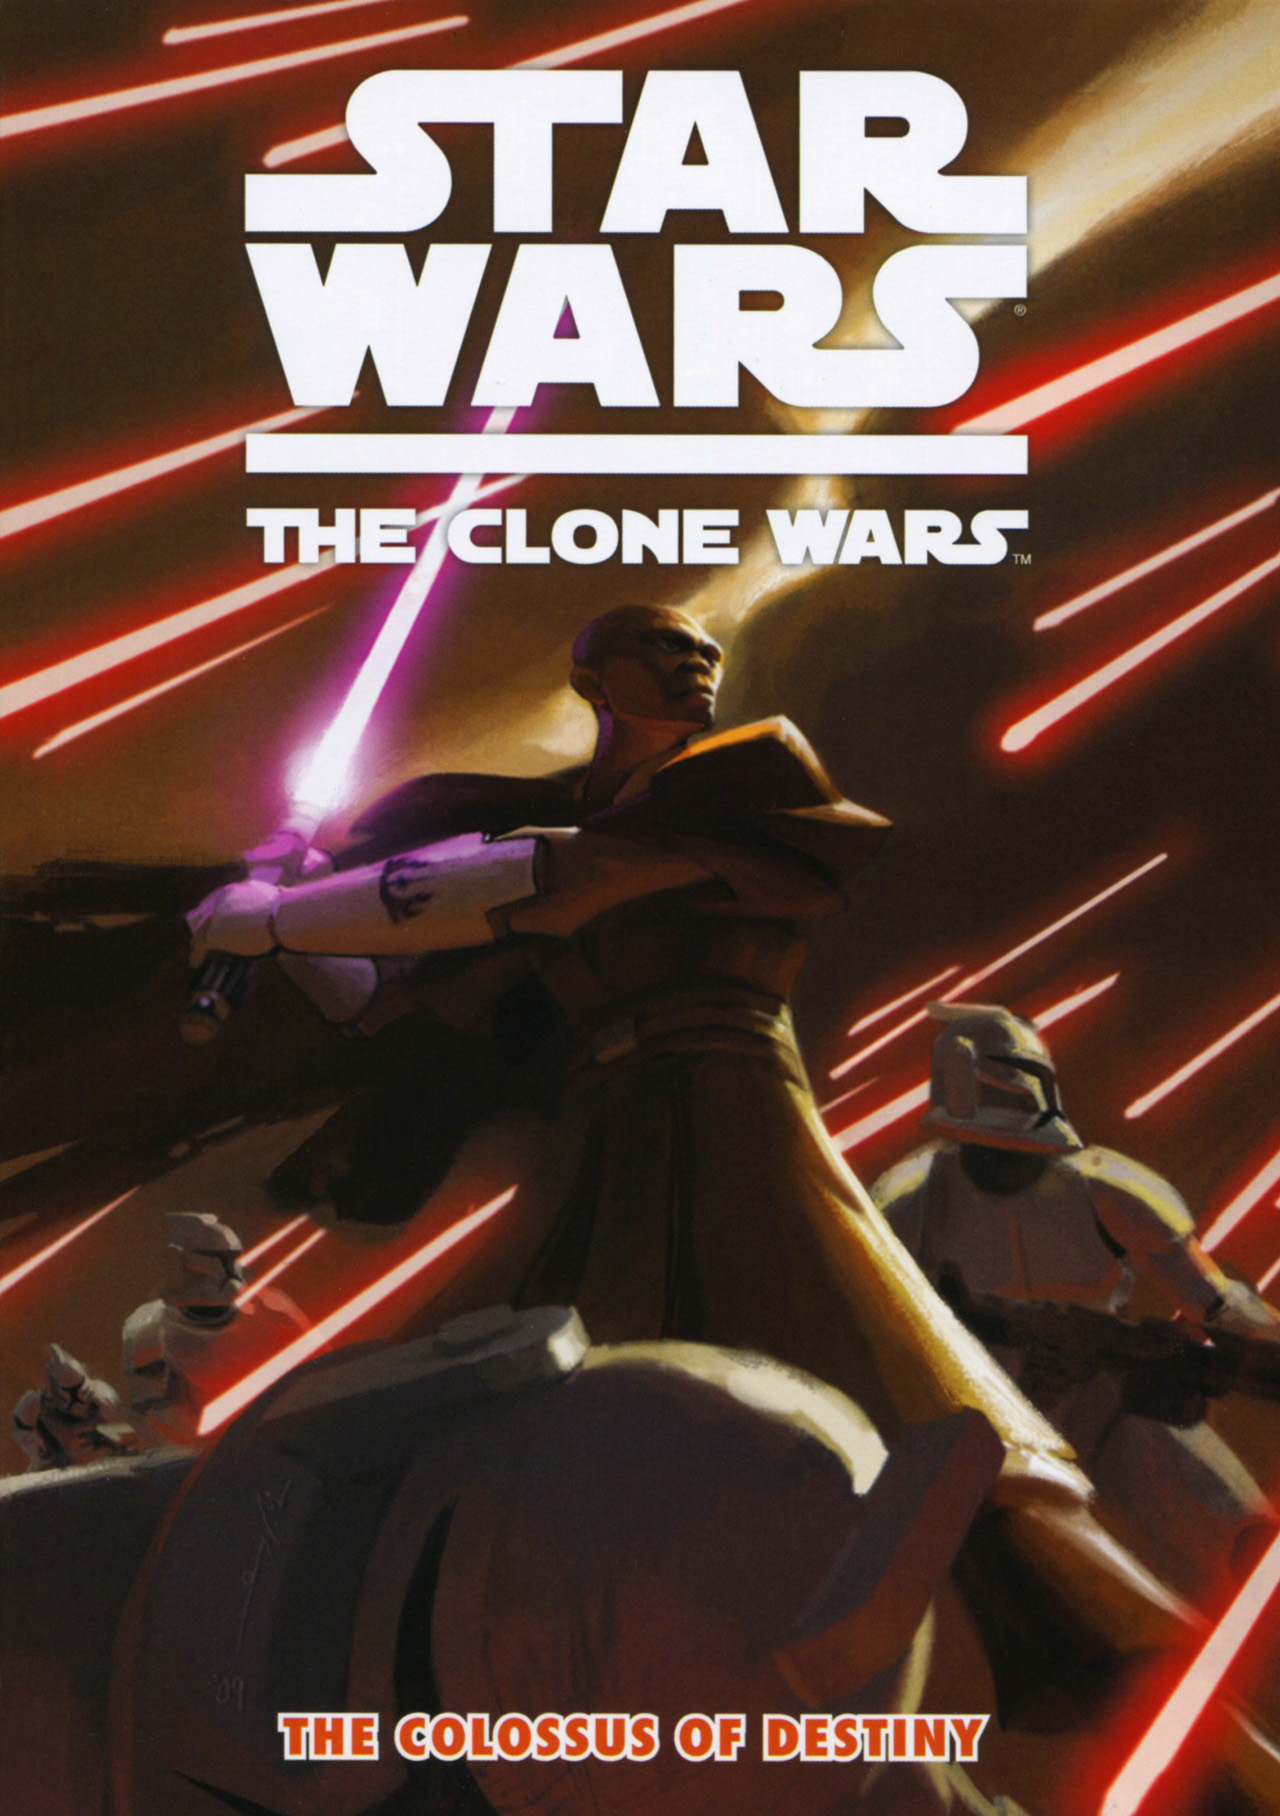 Star Wars: The Clone Wars - The Colossus of Destiny Full Page 1